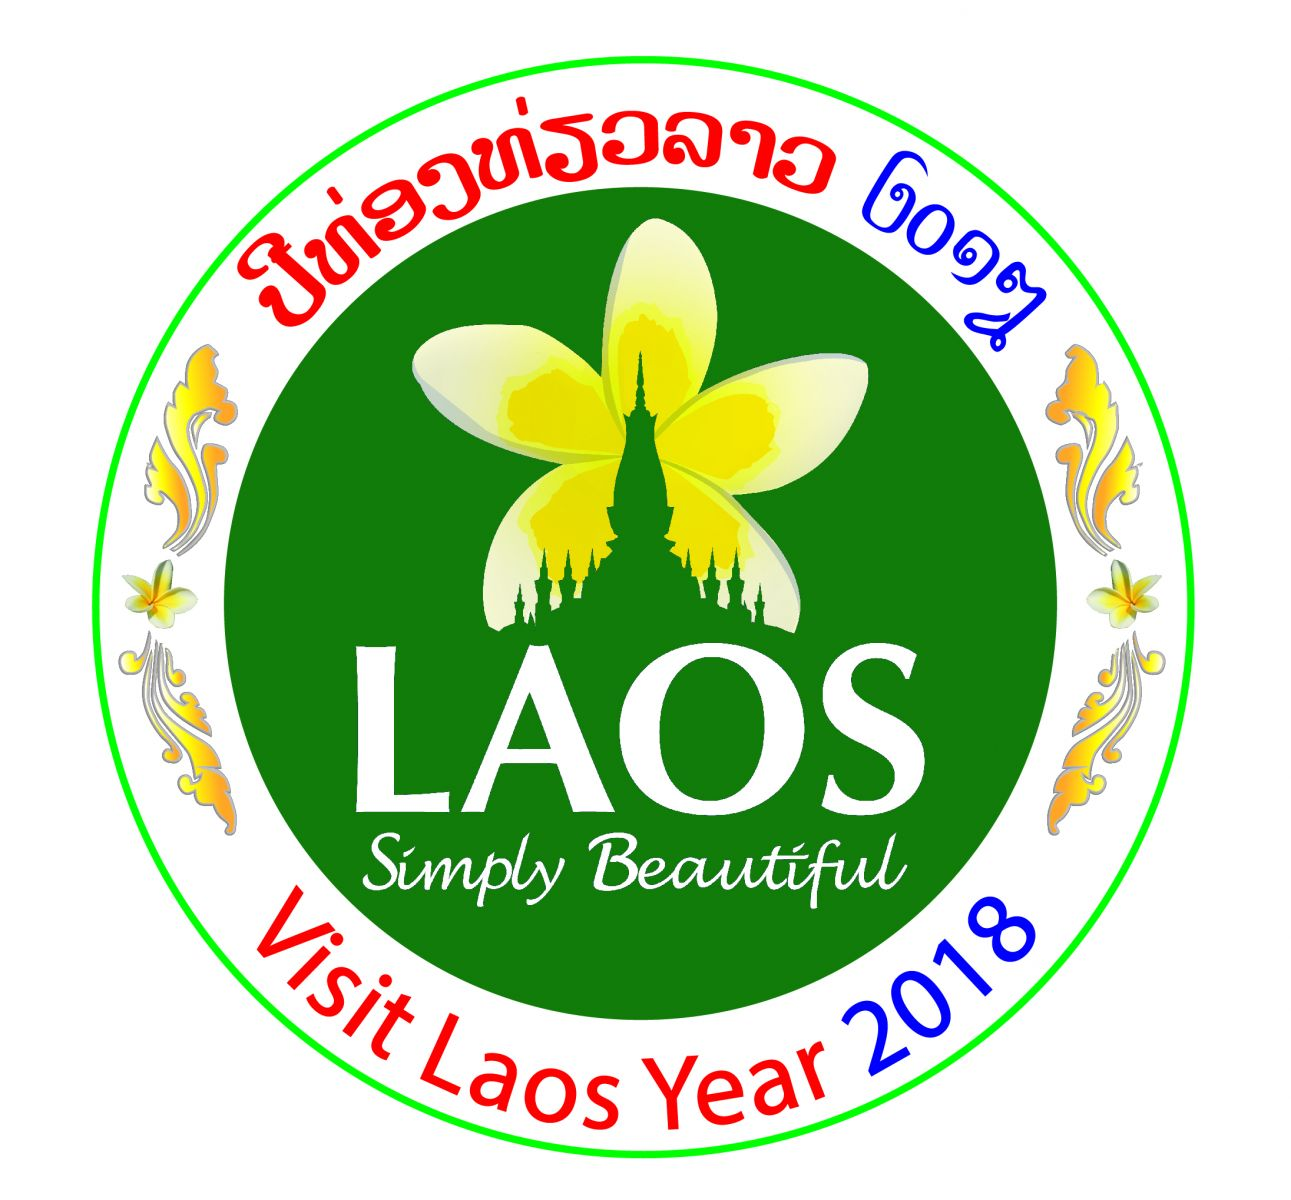 Laos simply beautiful logo